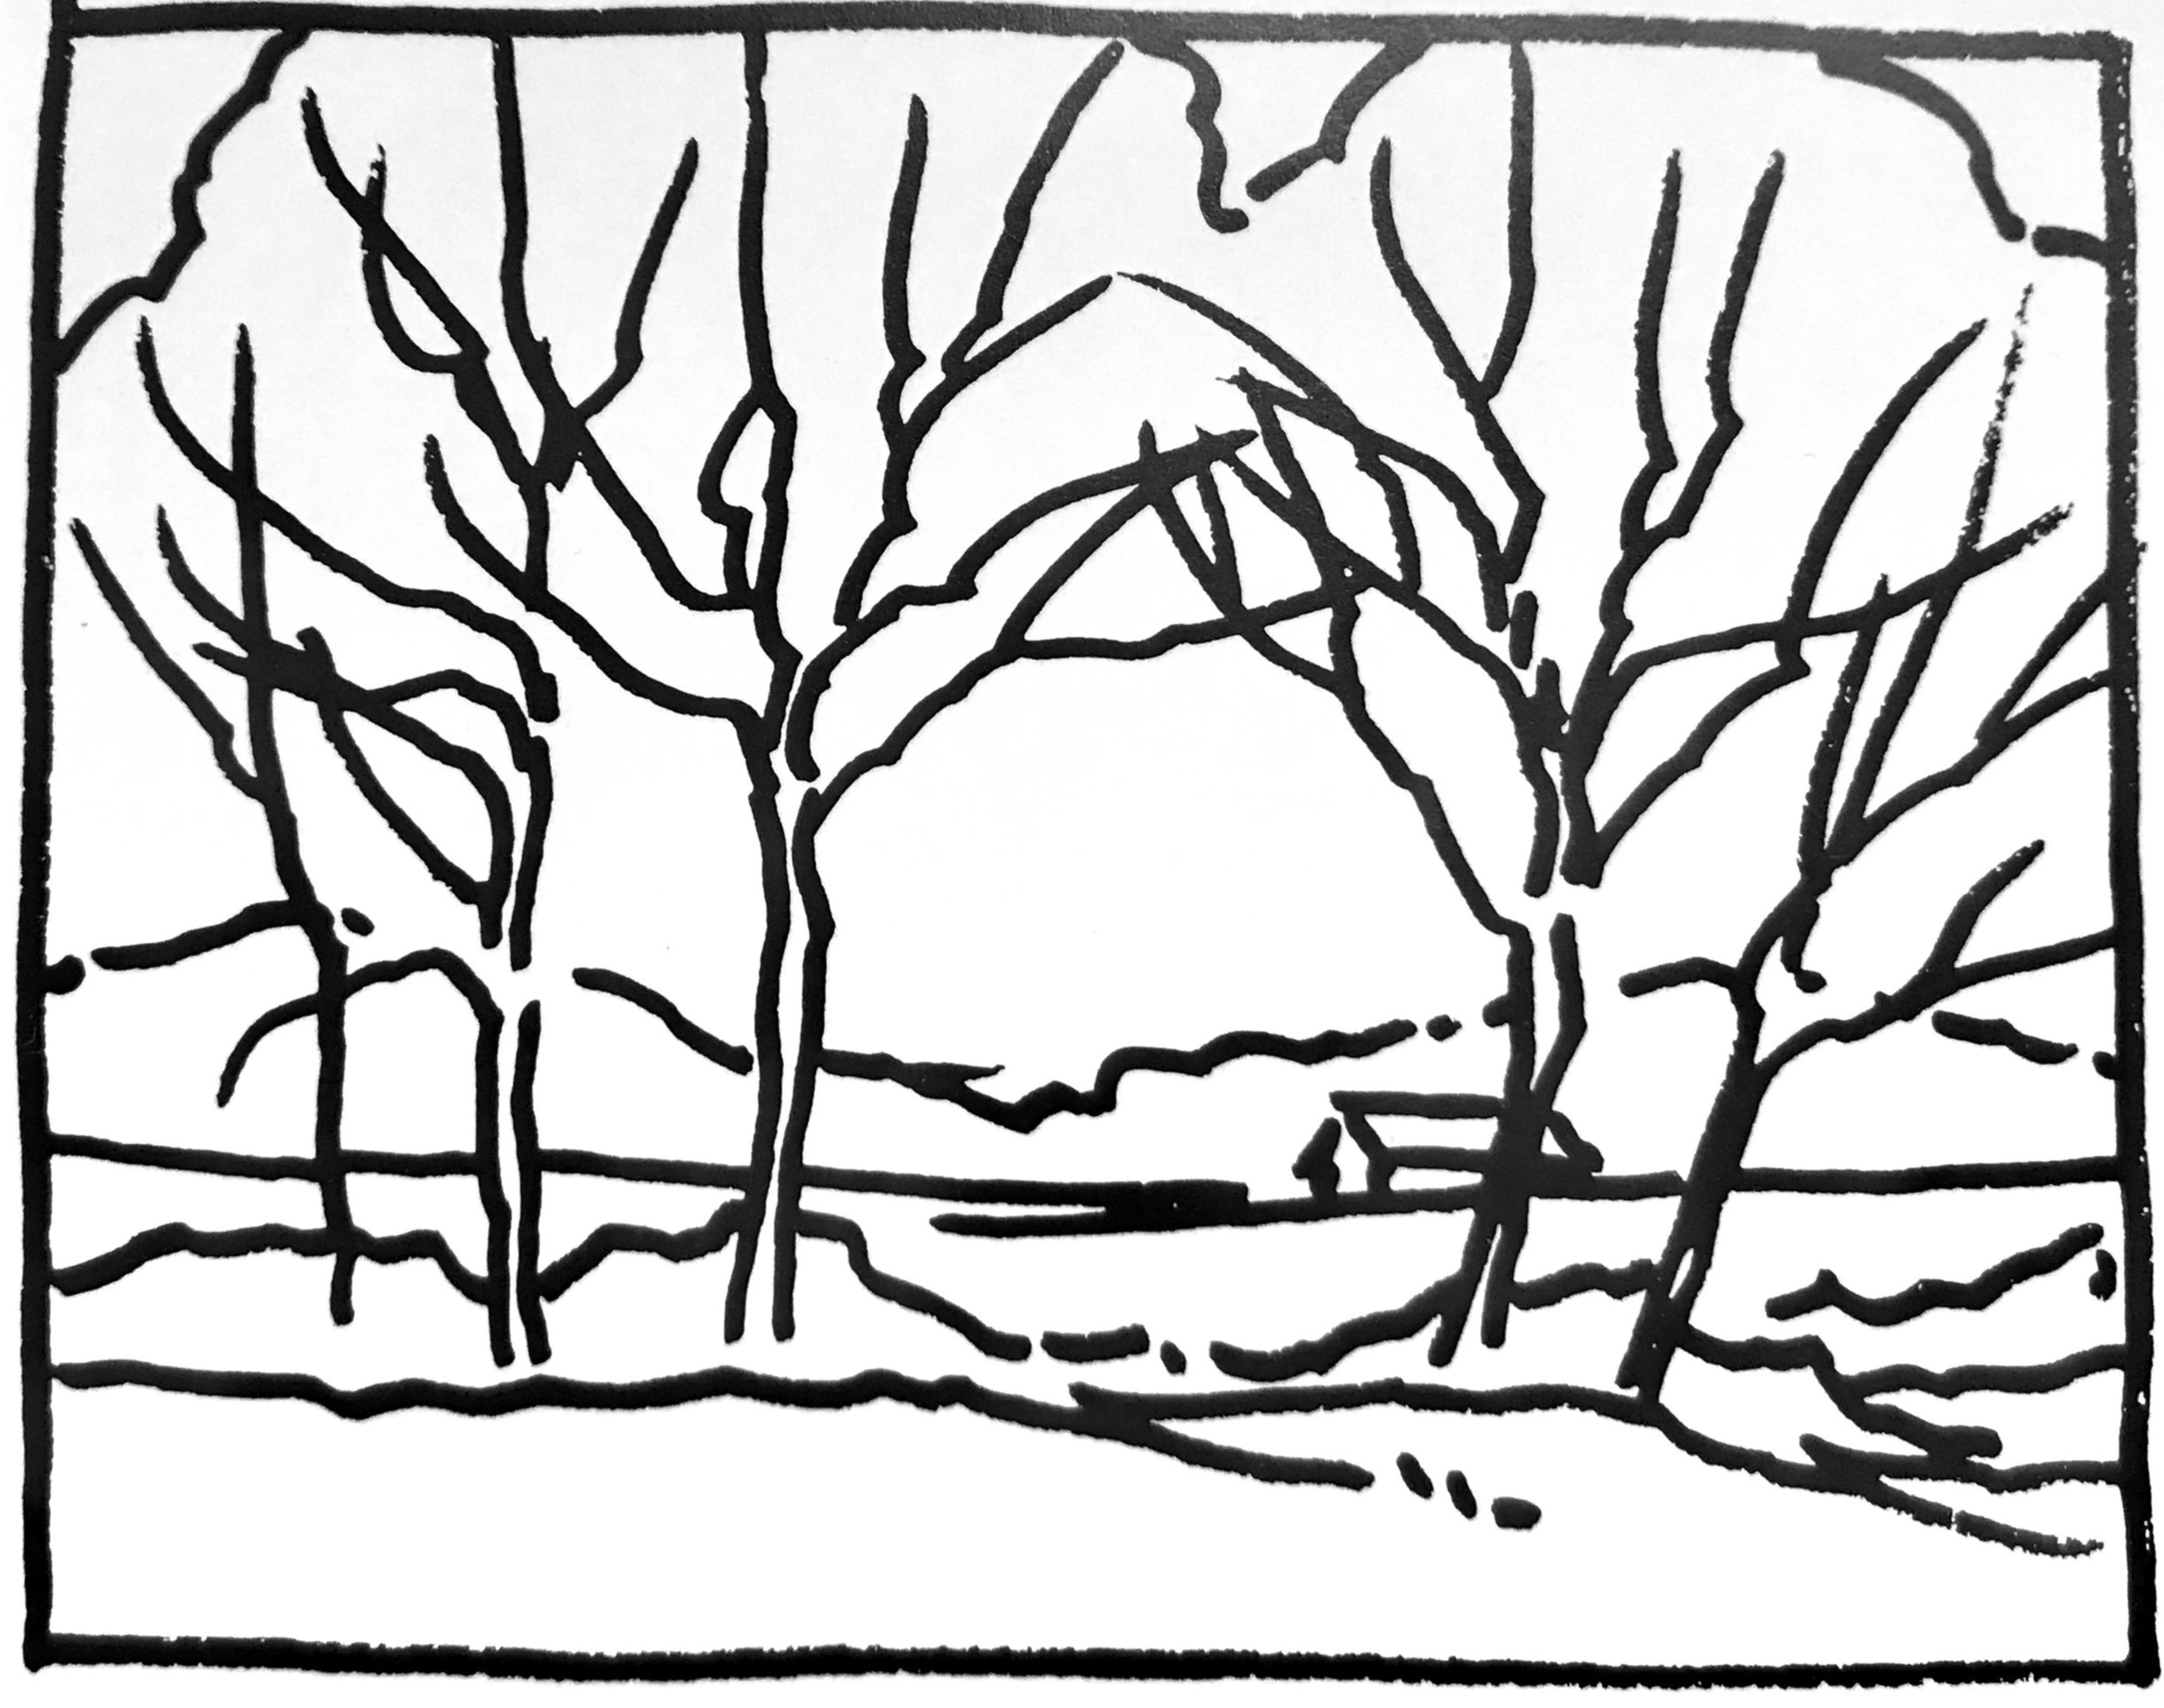 """O-SHAPE (OR U-SHAPE) - """"The basic scheme here is an O-shape; if the trees were open at the top, it would be a U-shape. This kind of scheme suggests continuous motion. Sometimes, as in this on-site sketch, it is used to frame a point of interest.""""From Painting Better Landscapes"""